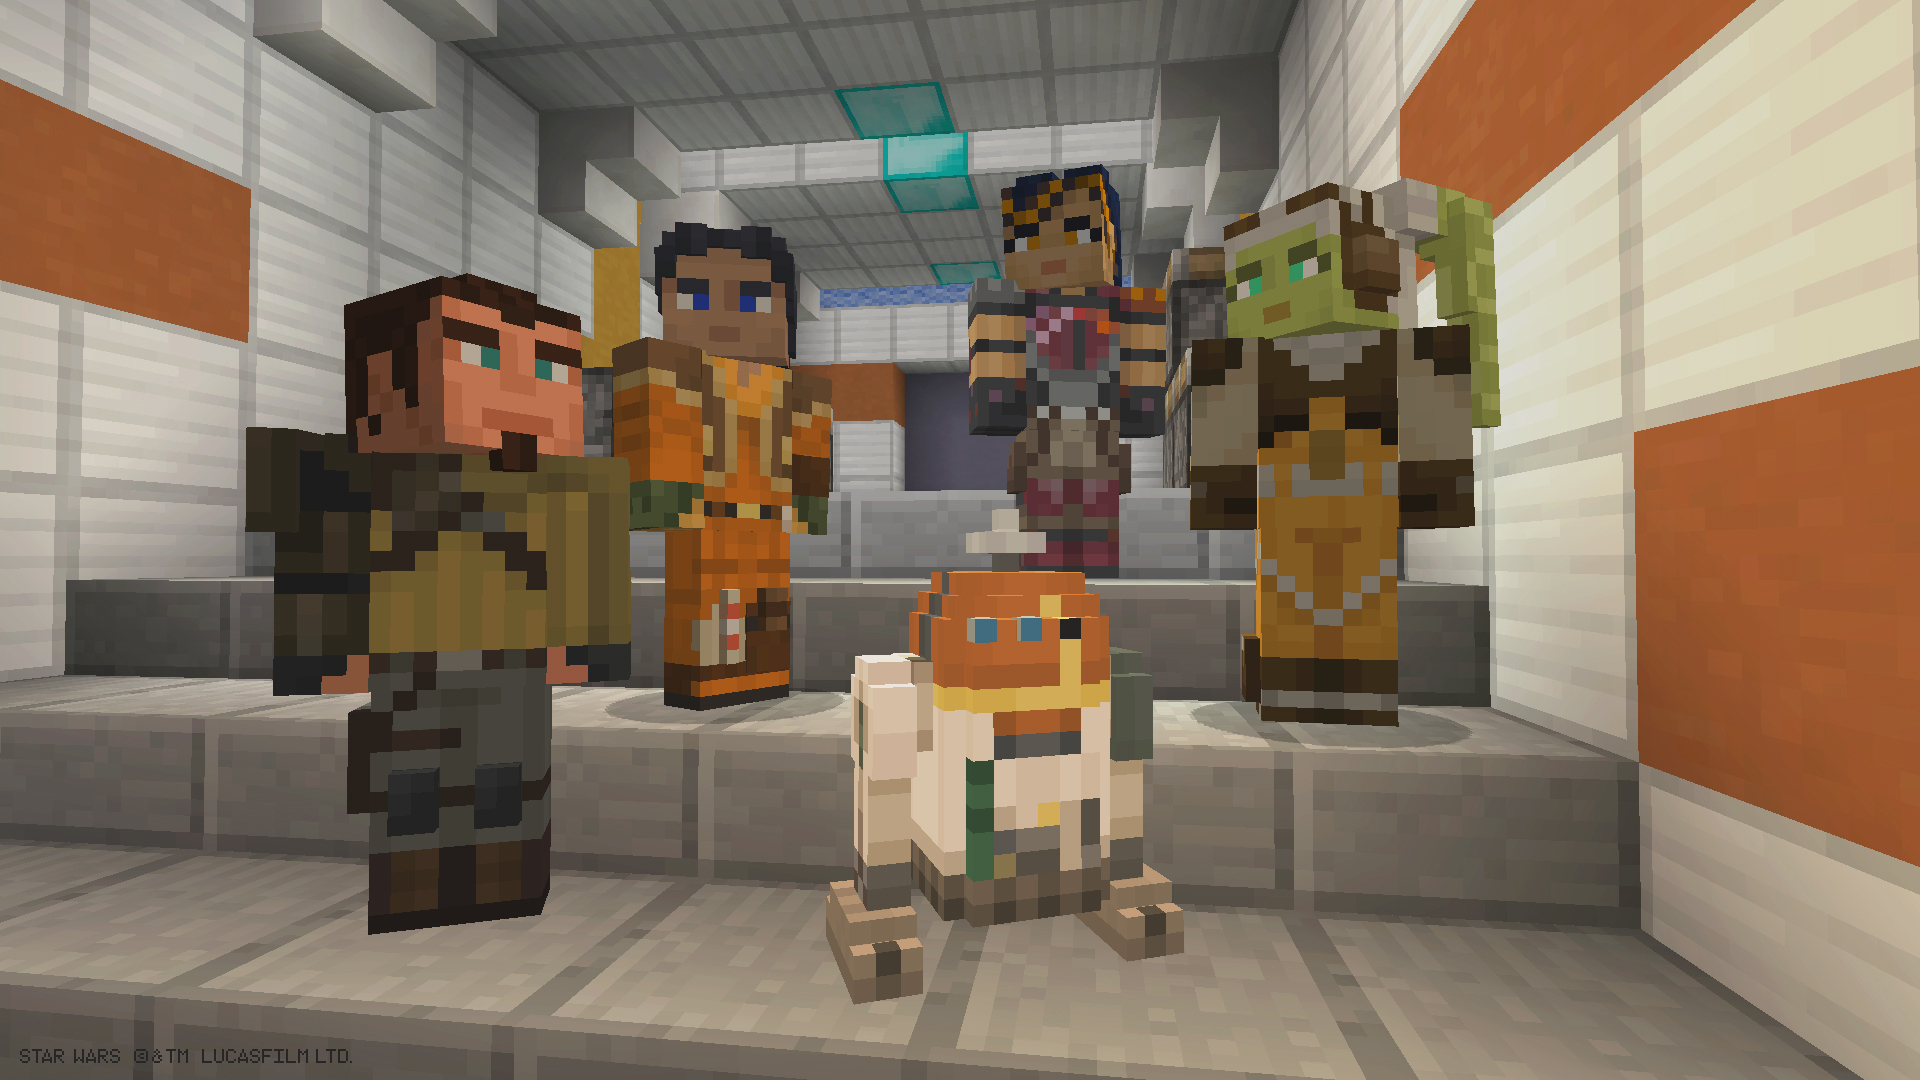 Star Wars Rebels Skin Pack Comes To Minecraft For Xbox Starwars Com